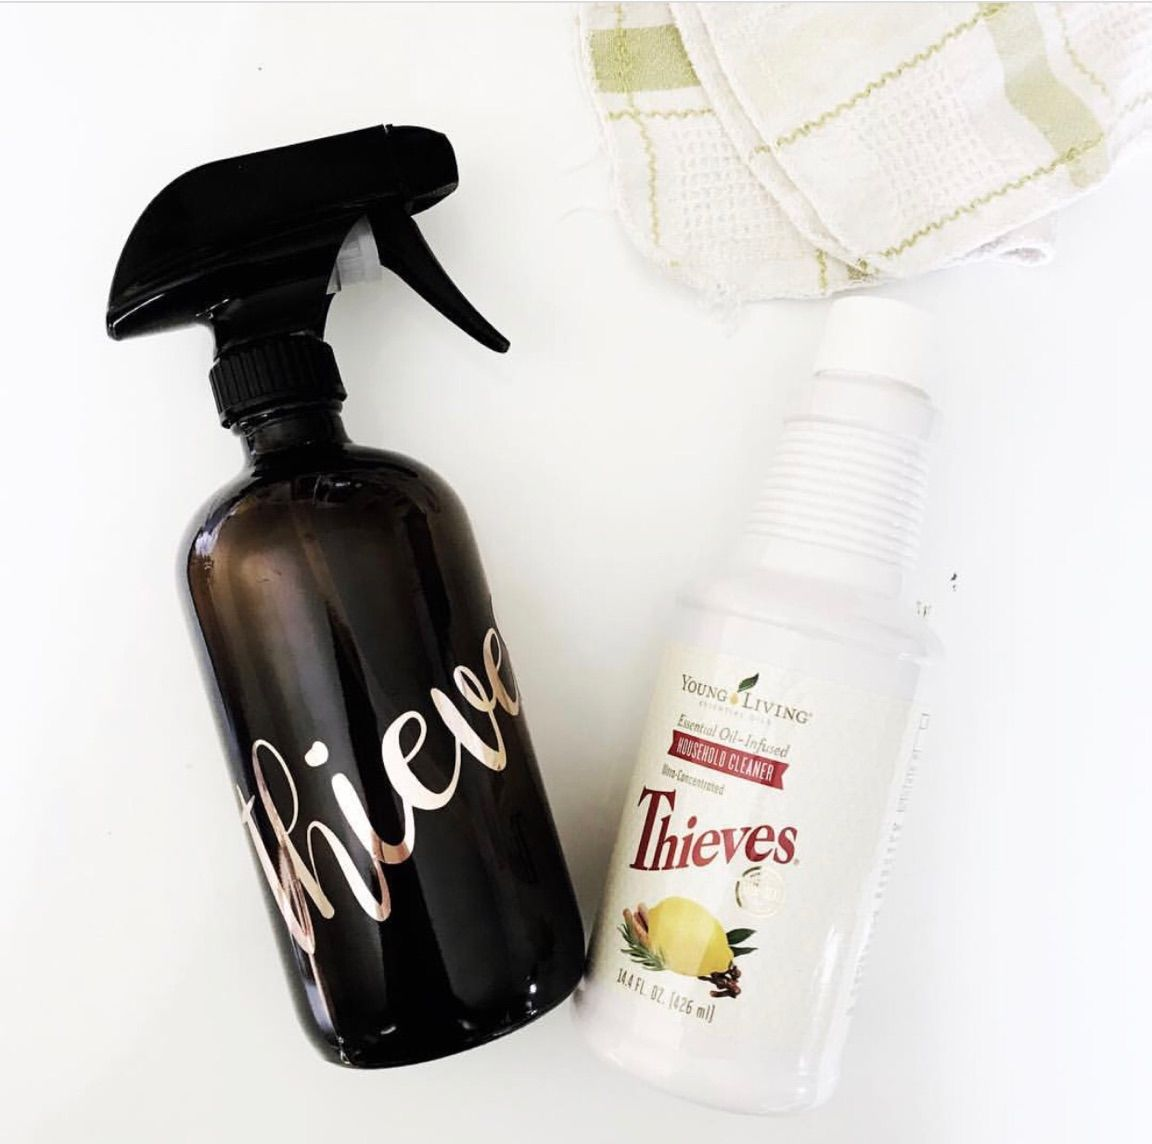 Thieves cleaner is a blend of Clove, Lemon, Rosemary, Cinnamon and ...